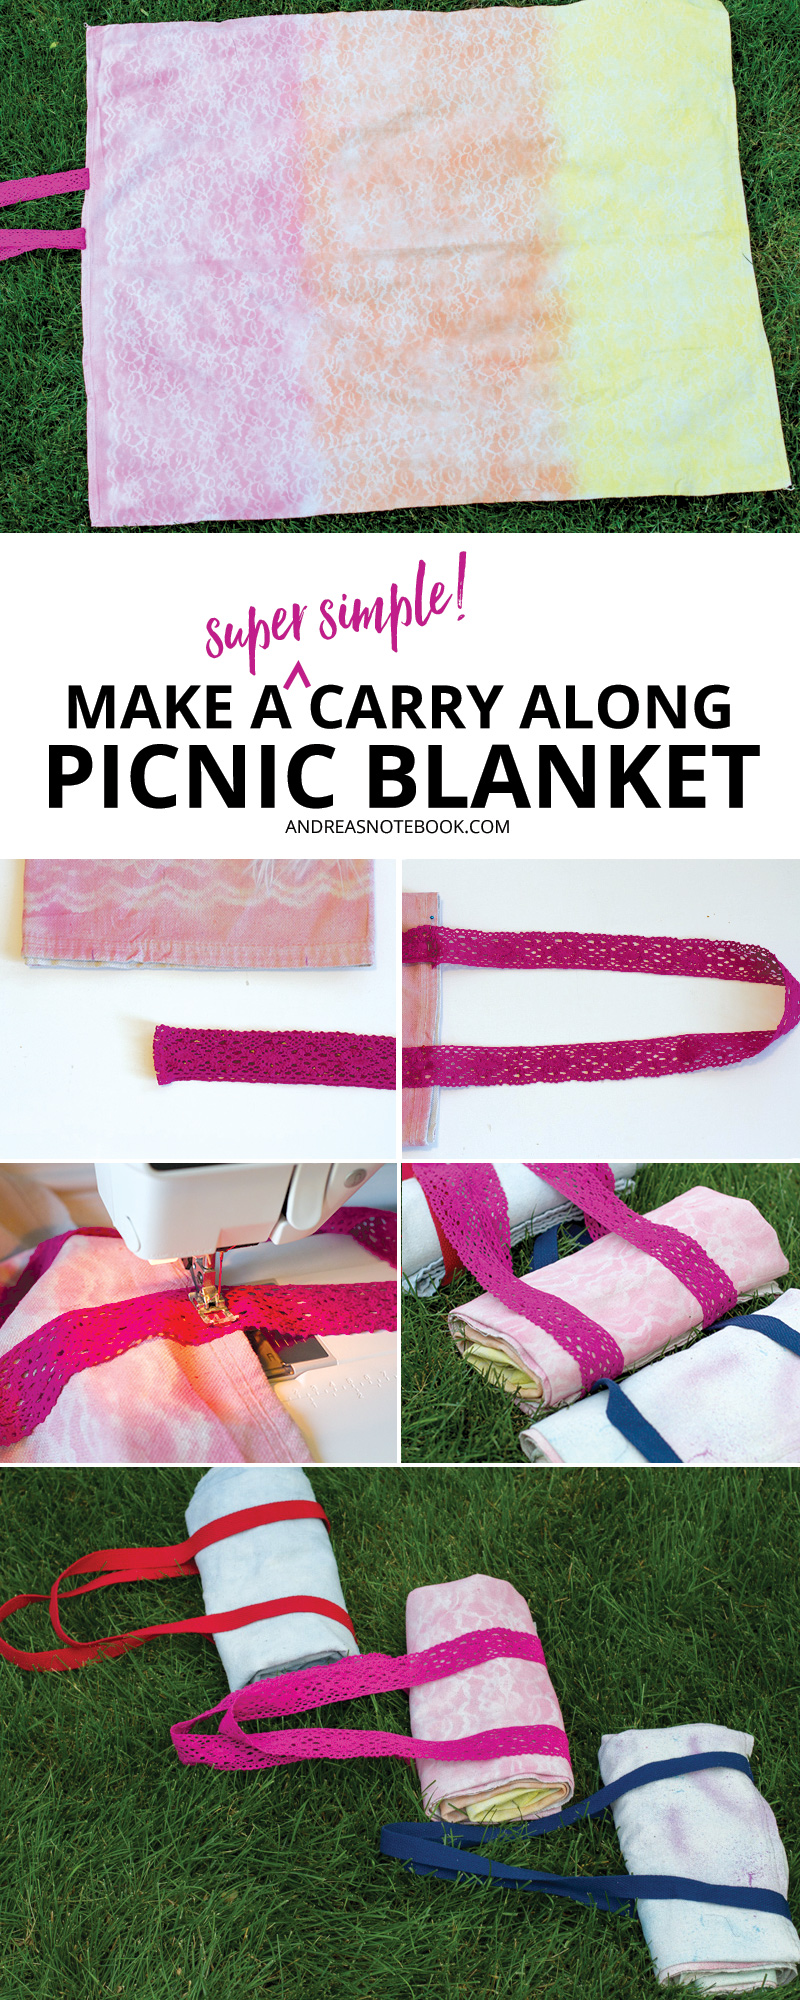 Learn how to make a carry along picnic blanket